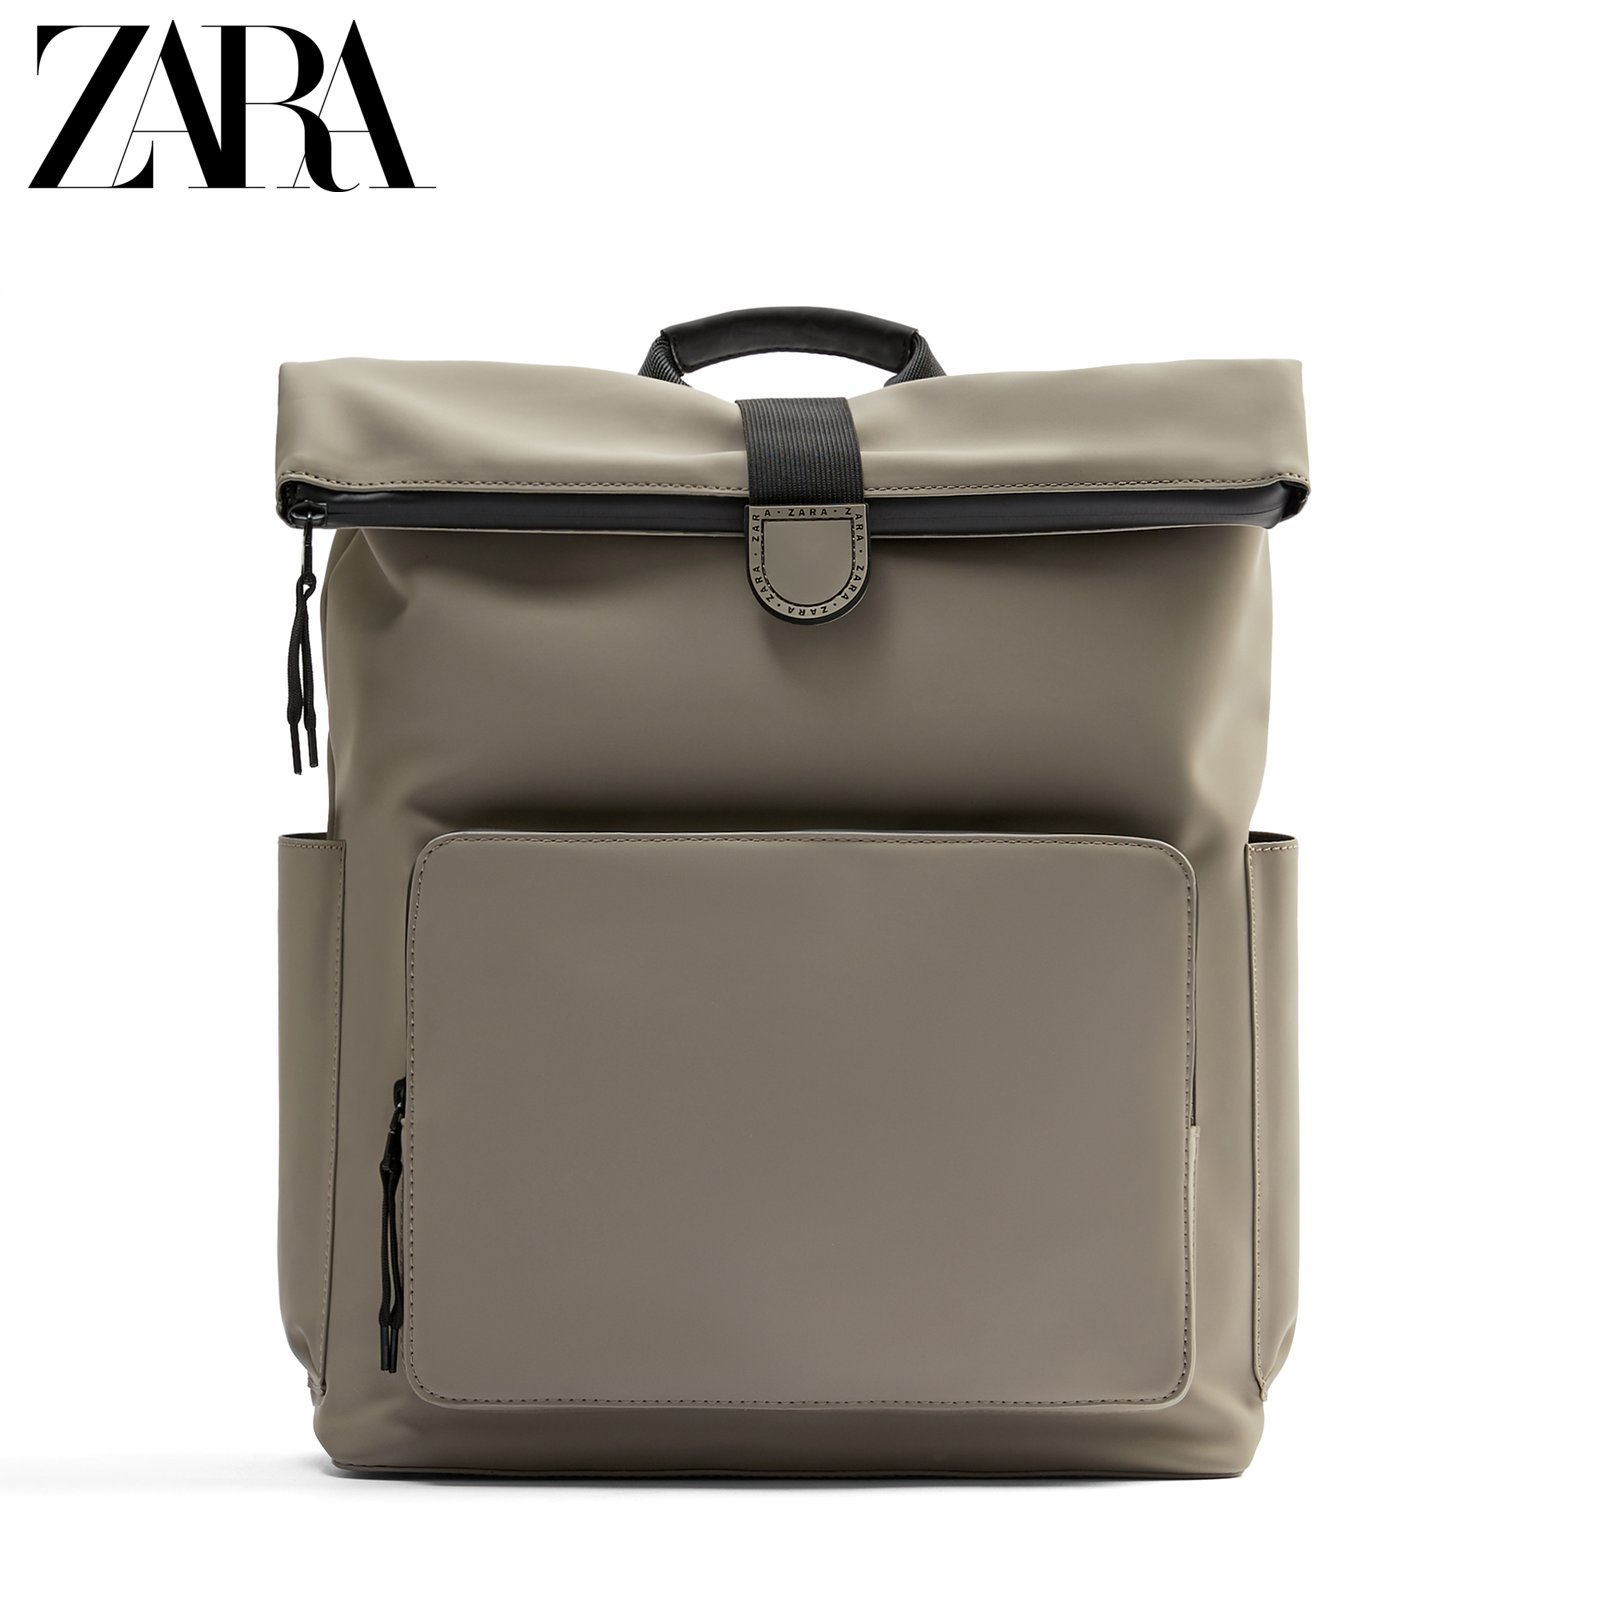 Zara new men's bag gray laminated large-capacity portable and practical backpack 13215620004